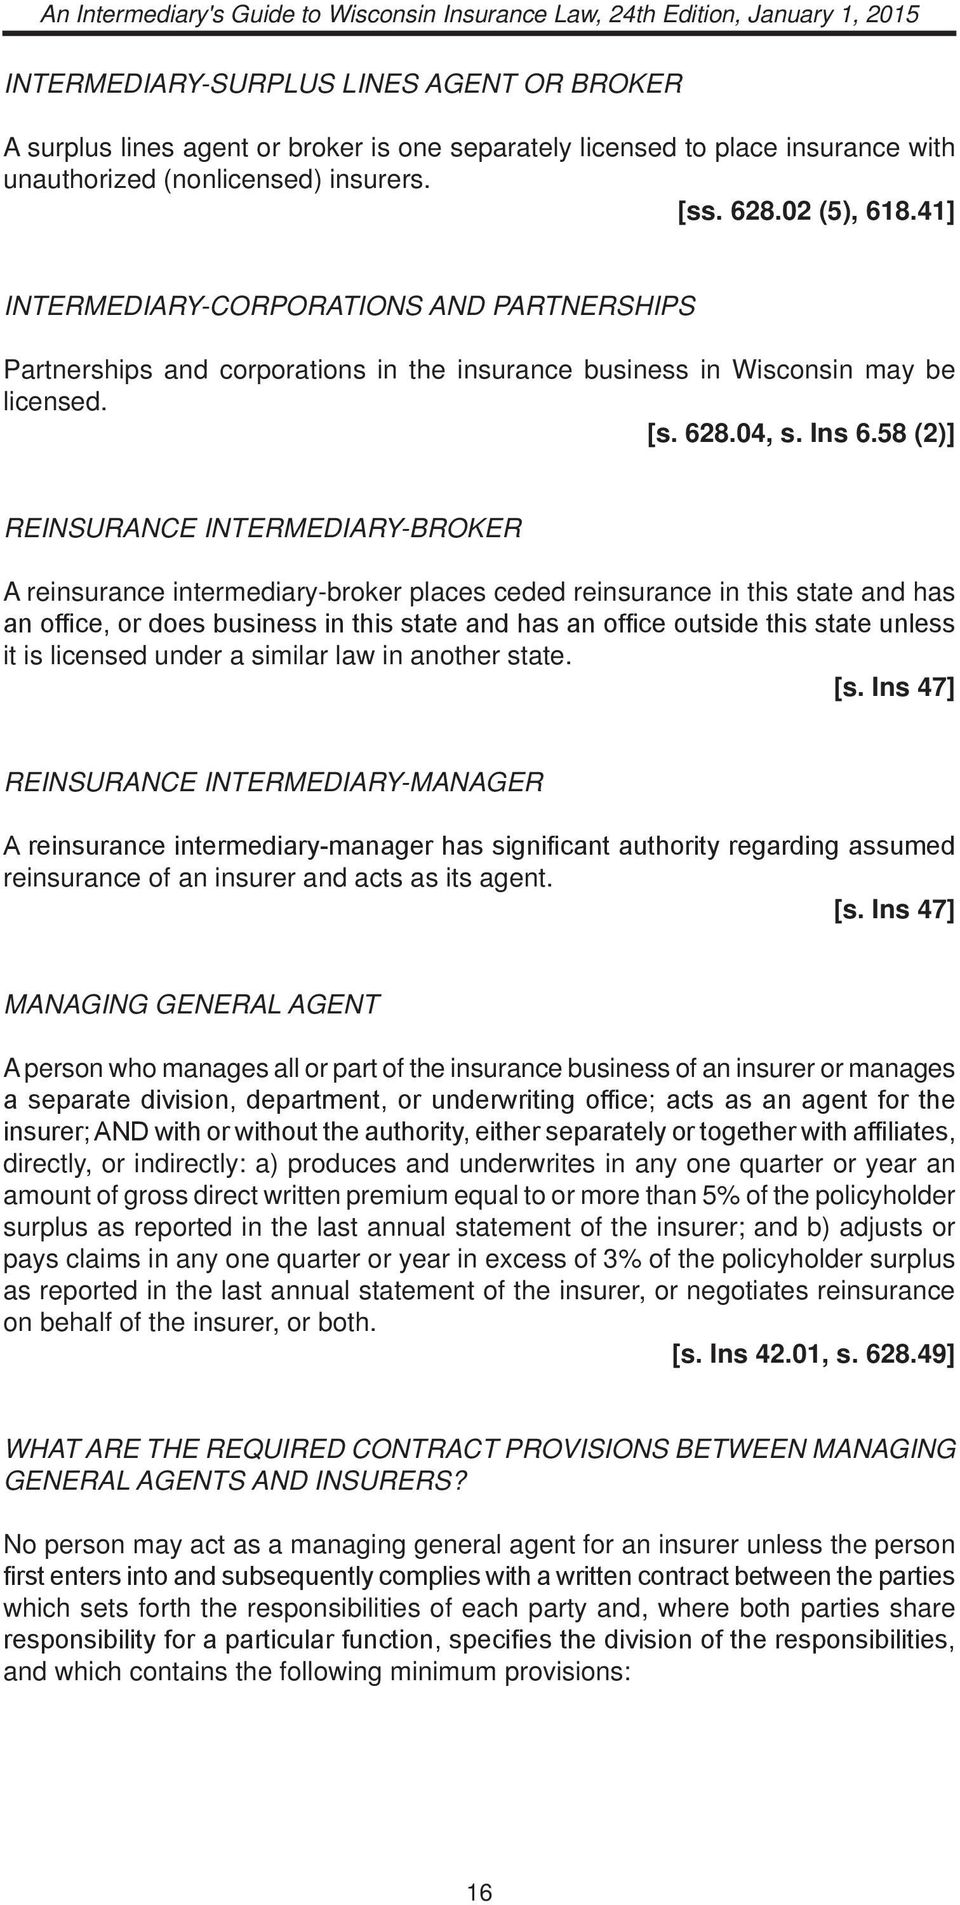 58 (2)] REINSURANCE INTERMEDIARY-BROKER A reinsurance intermediary-broker places ceded reinsurance in this state and has an office, or does business in this state and has an office outside this state